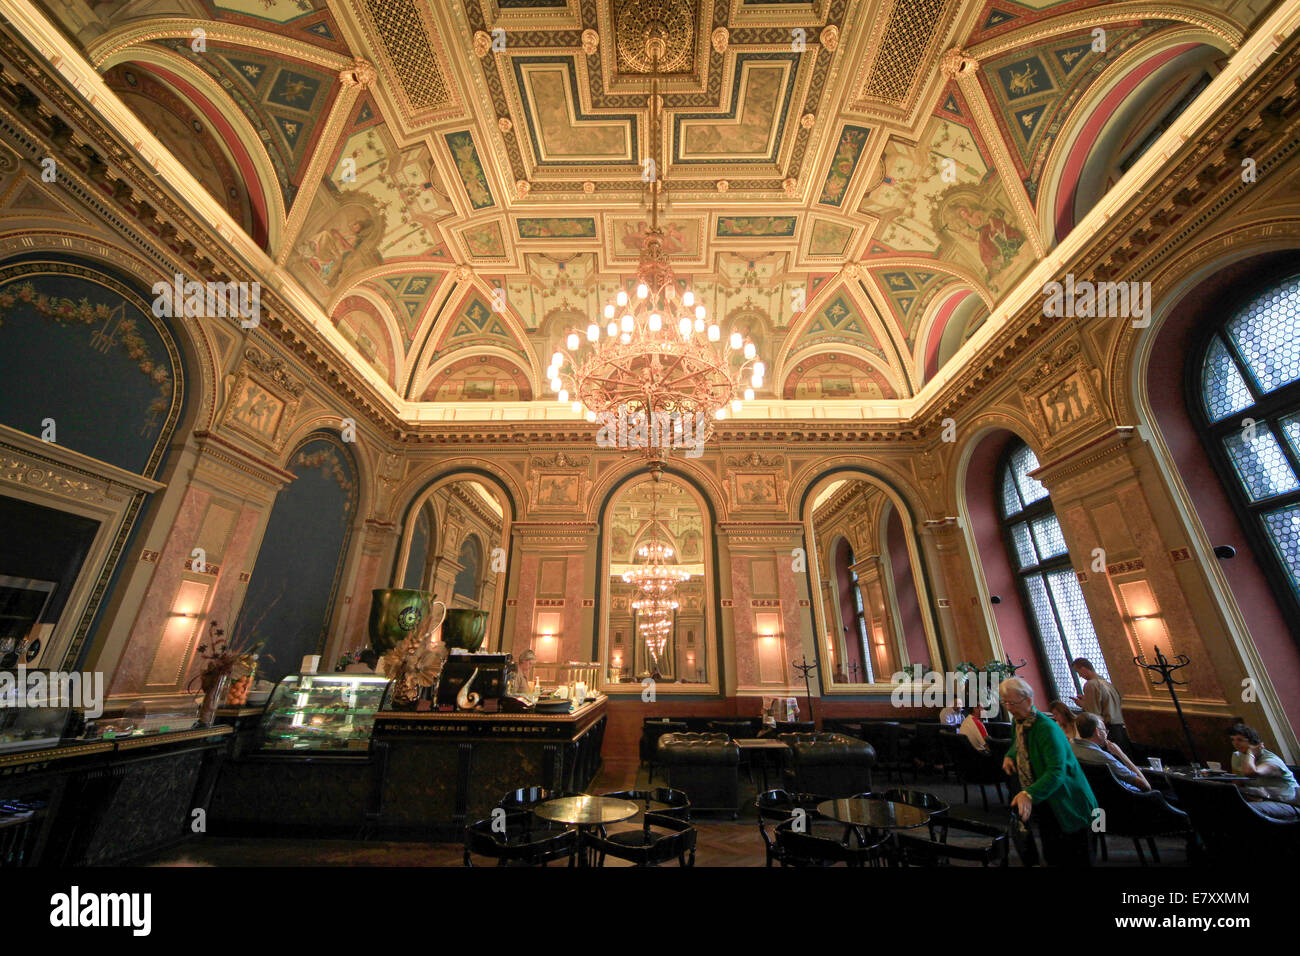 Ornate ceiling of the bookstore cafe, Budapest, Hungary - Stock Image